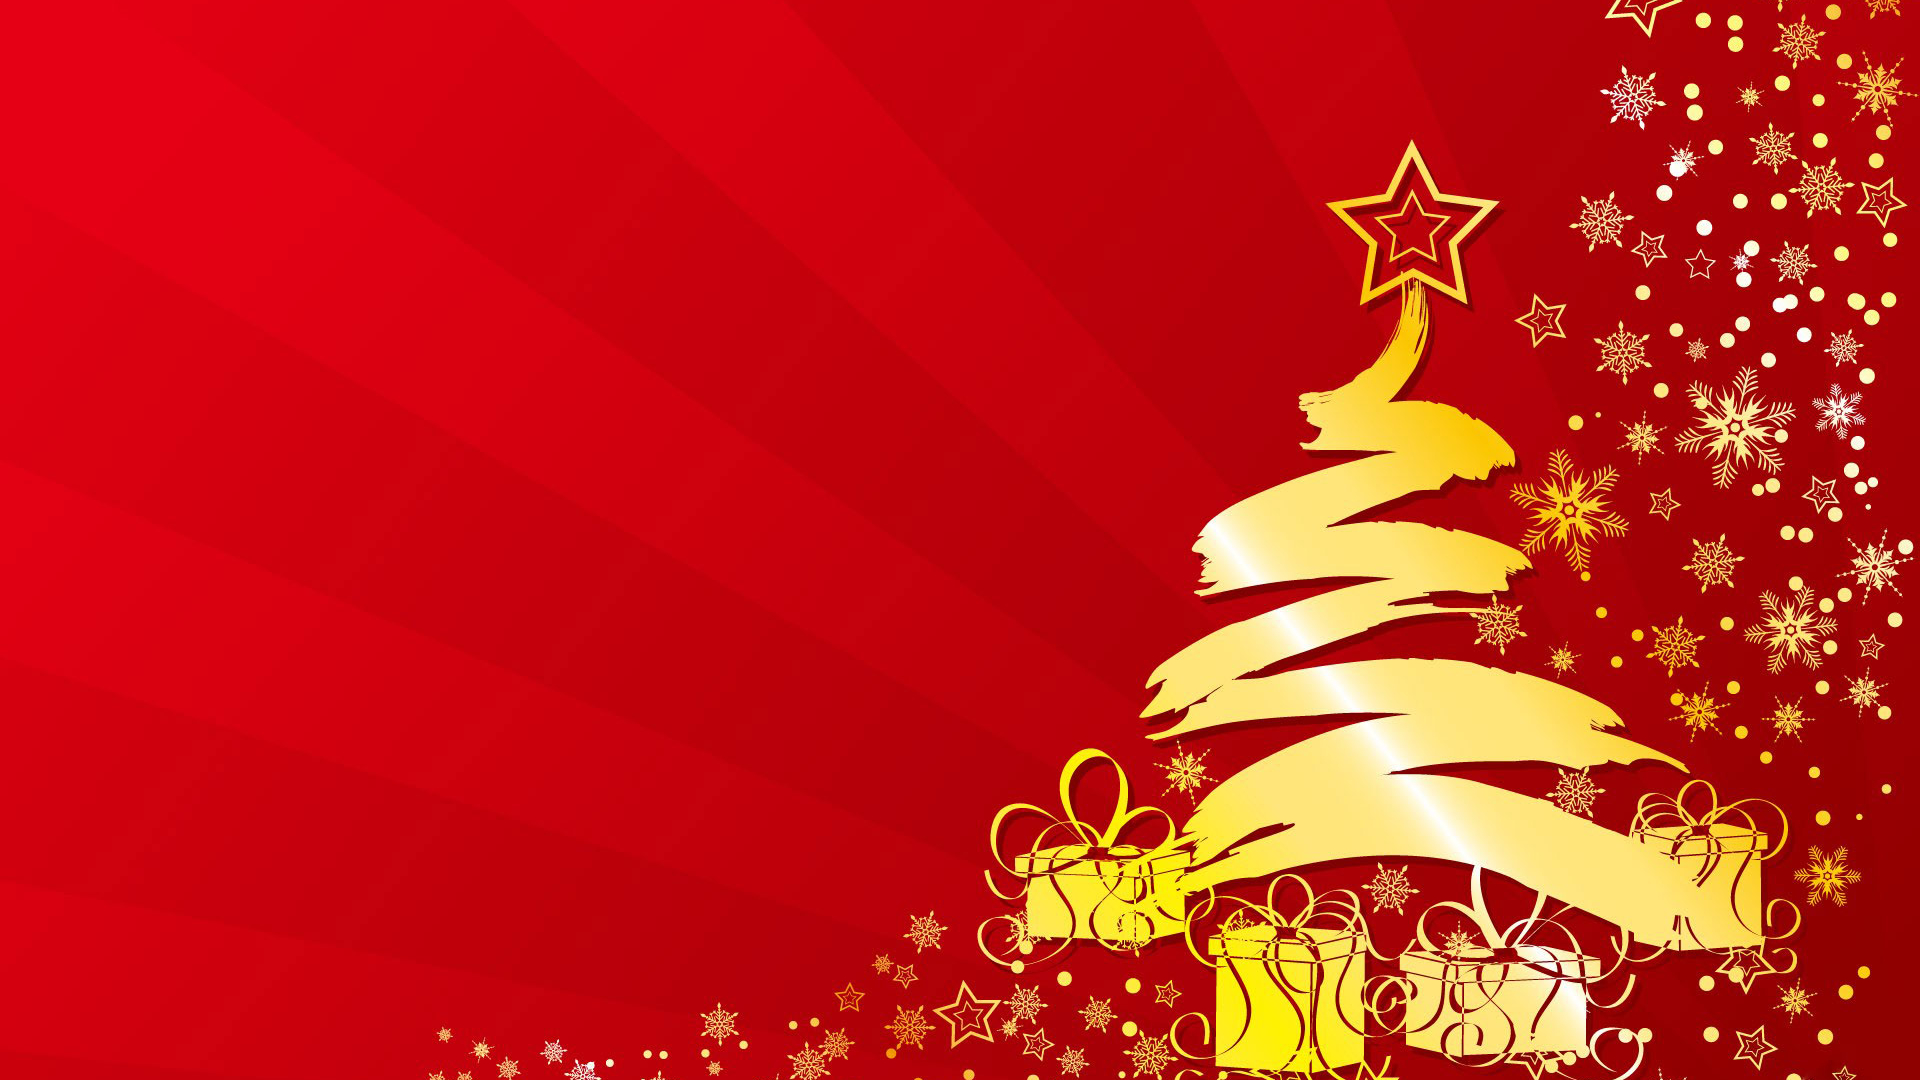 Free Download Christmas Windows 8 Nice Wallpapers All For Windows